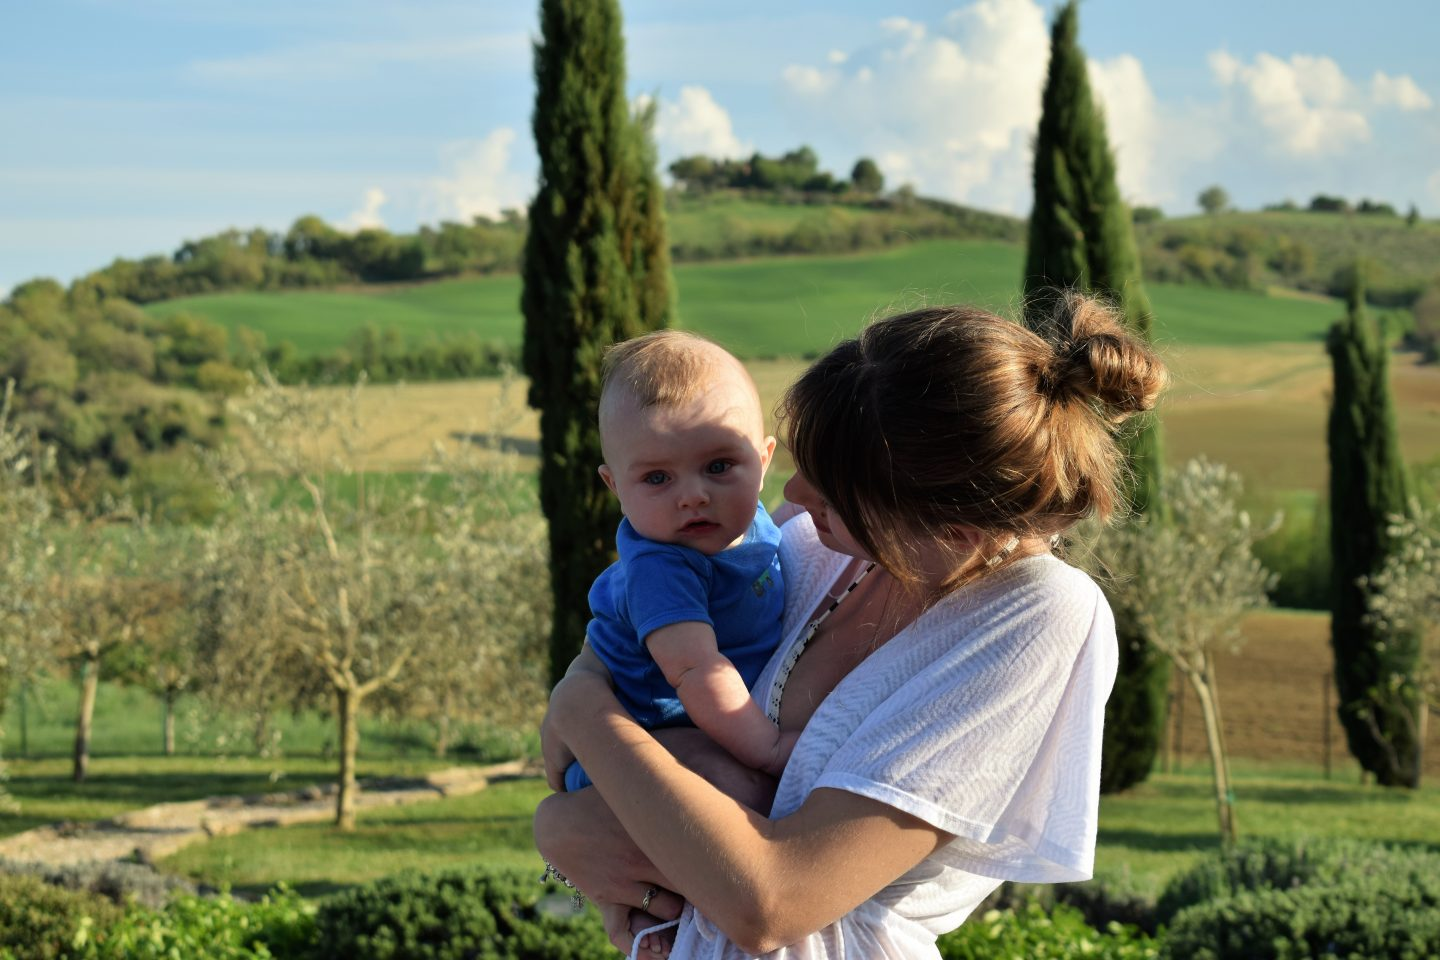 Don't tell me I don't do enough – the story of the unappreciated stay at home mum